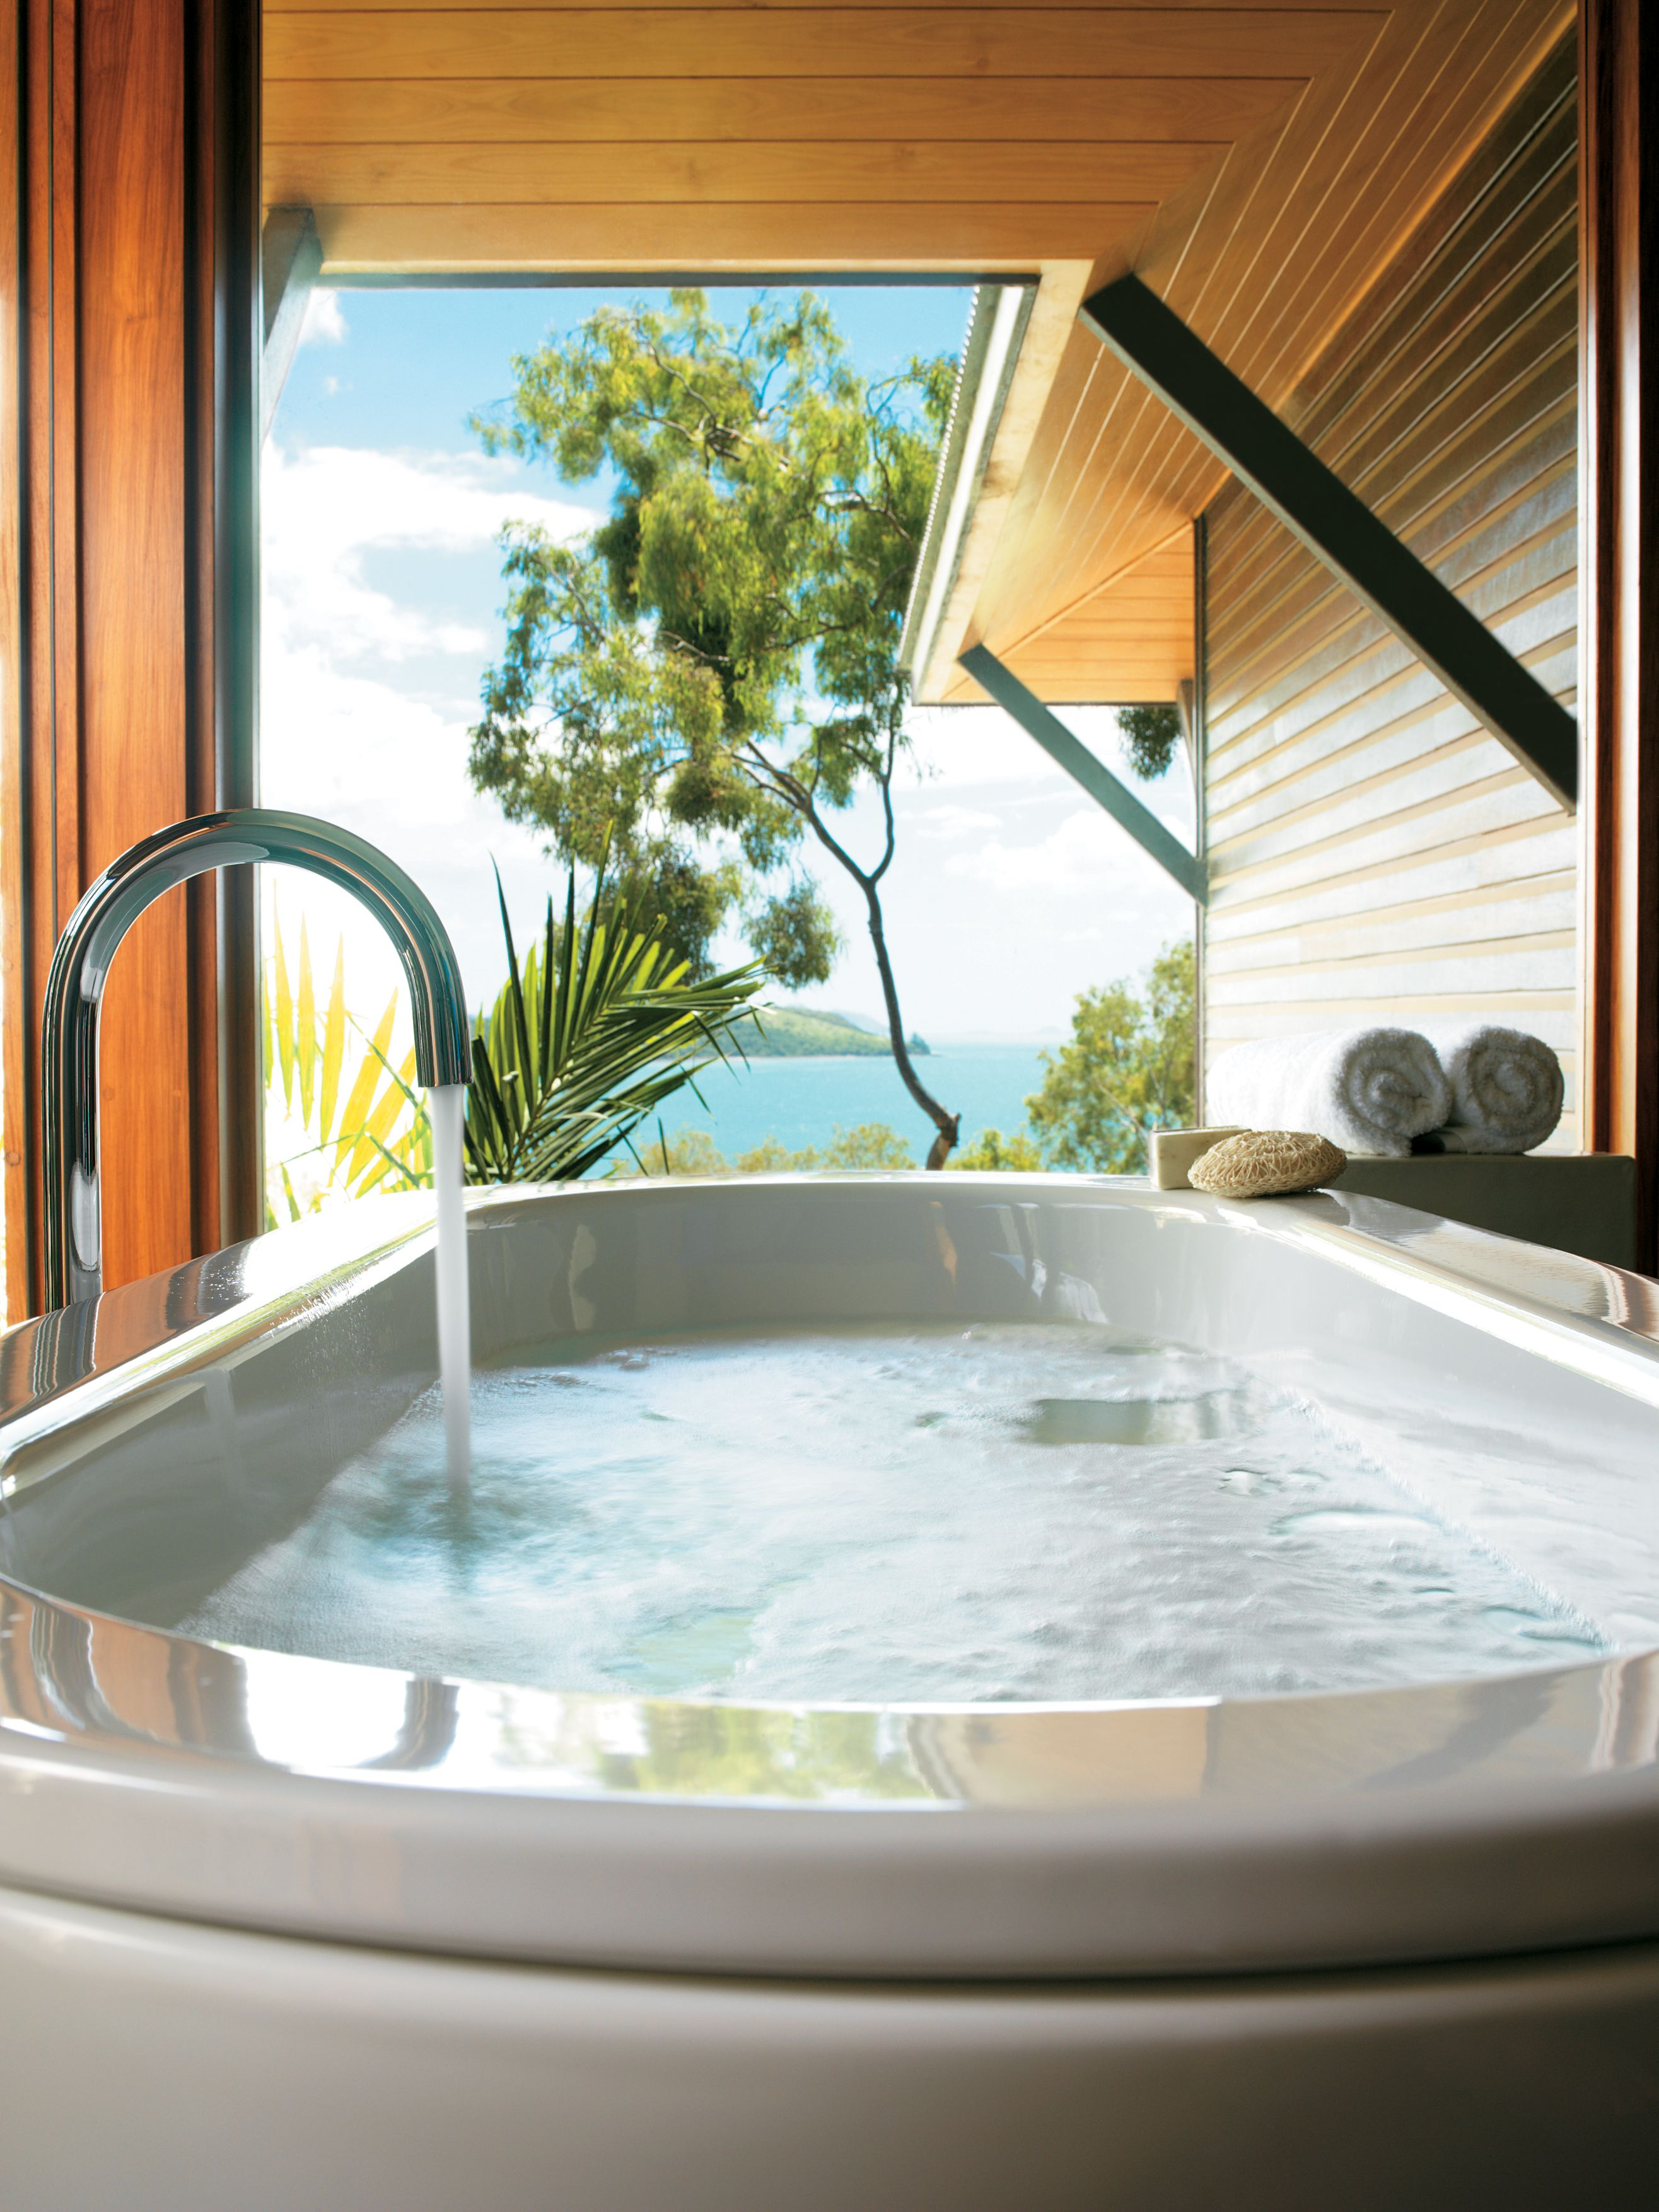 After a long day of enjoying paradise, why not soak in a luxurious bath with a view!